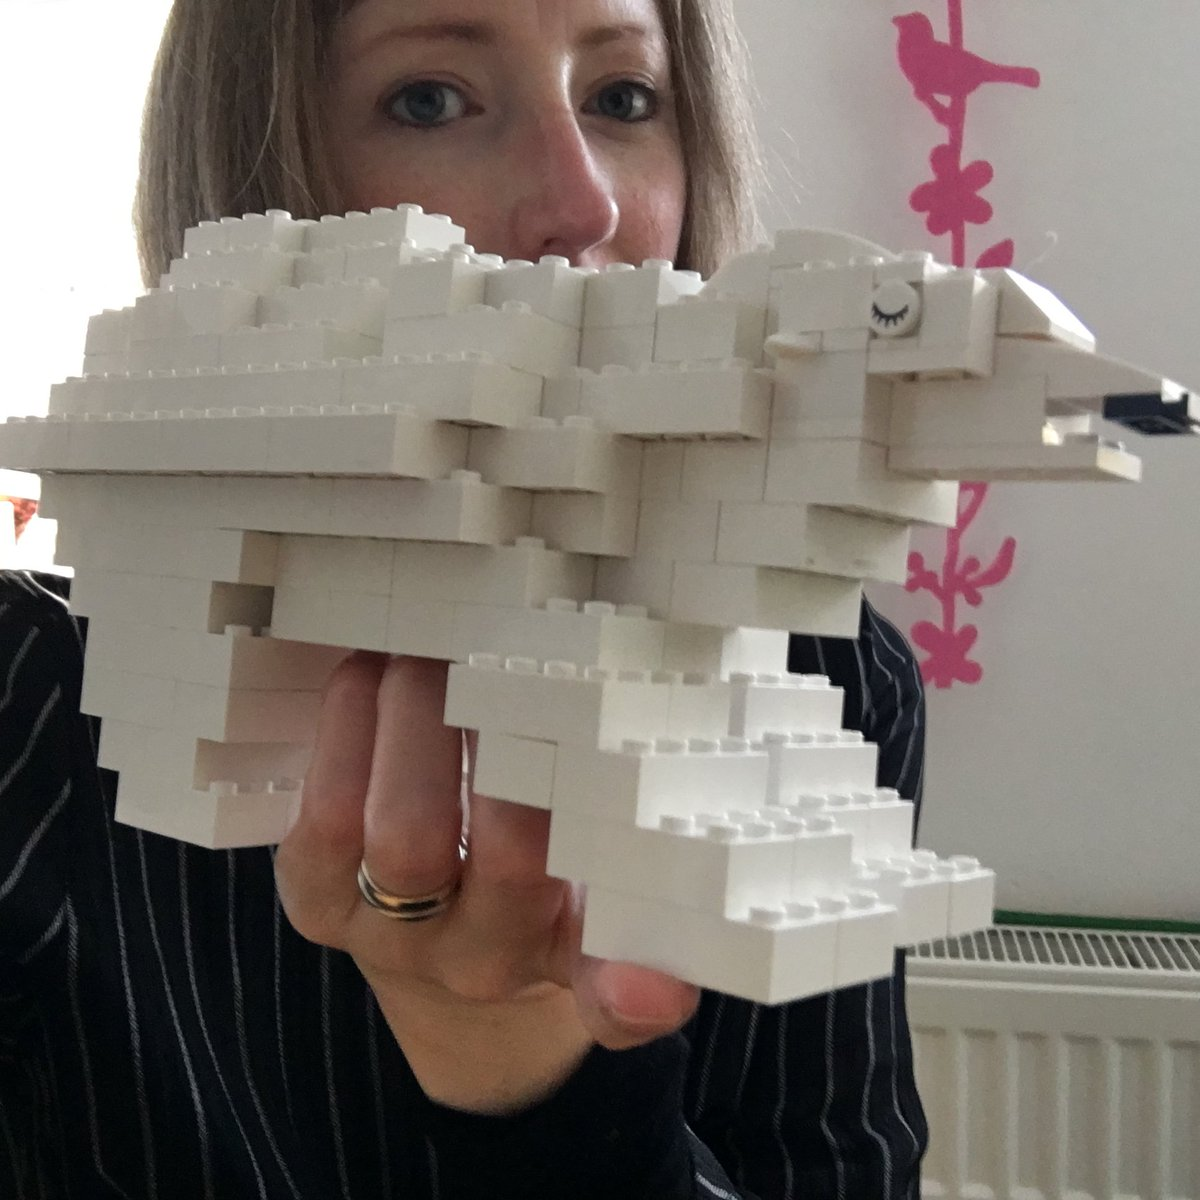 When you take a short break from producing a #climatechange story featuring a #polarbear to have some quality #lego time with your son...<br>http://pic.twitter.com/z7S6Tla98c